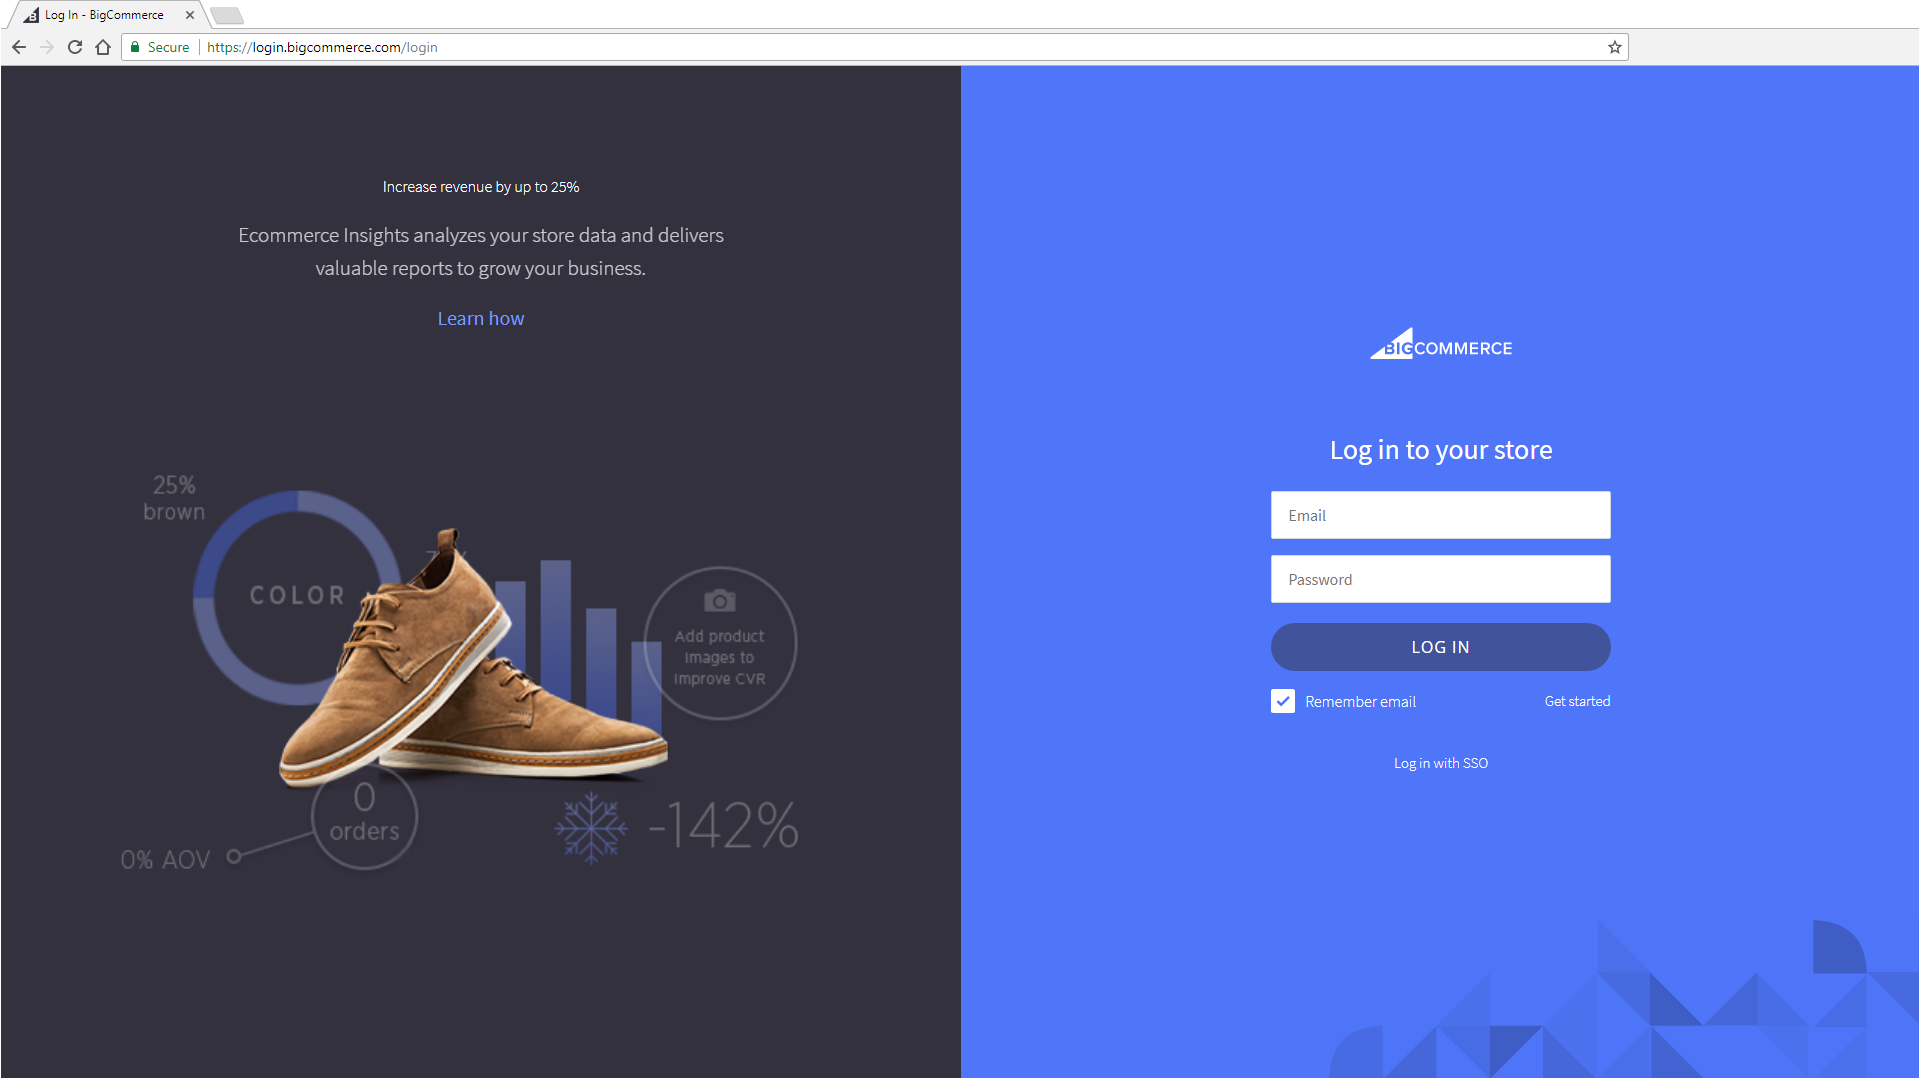 BigCommerce Login Page